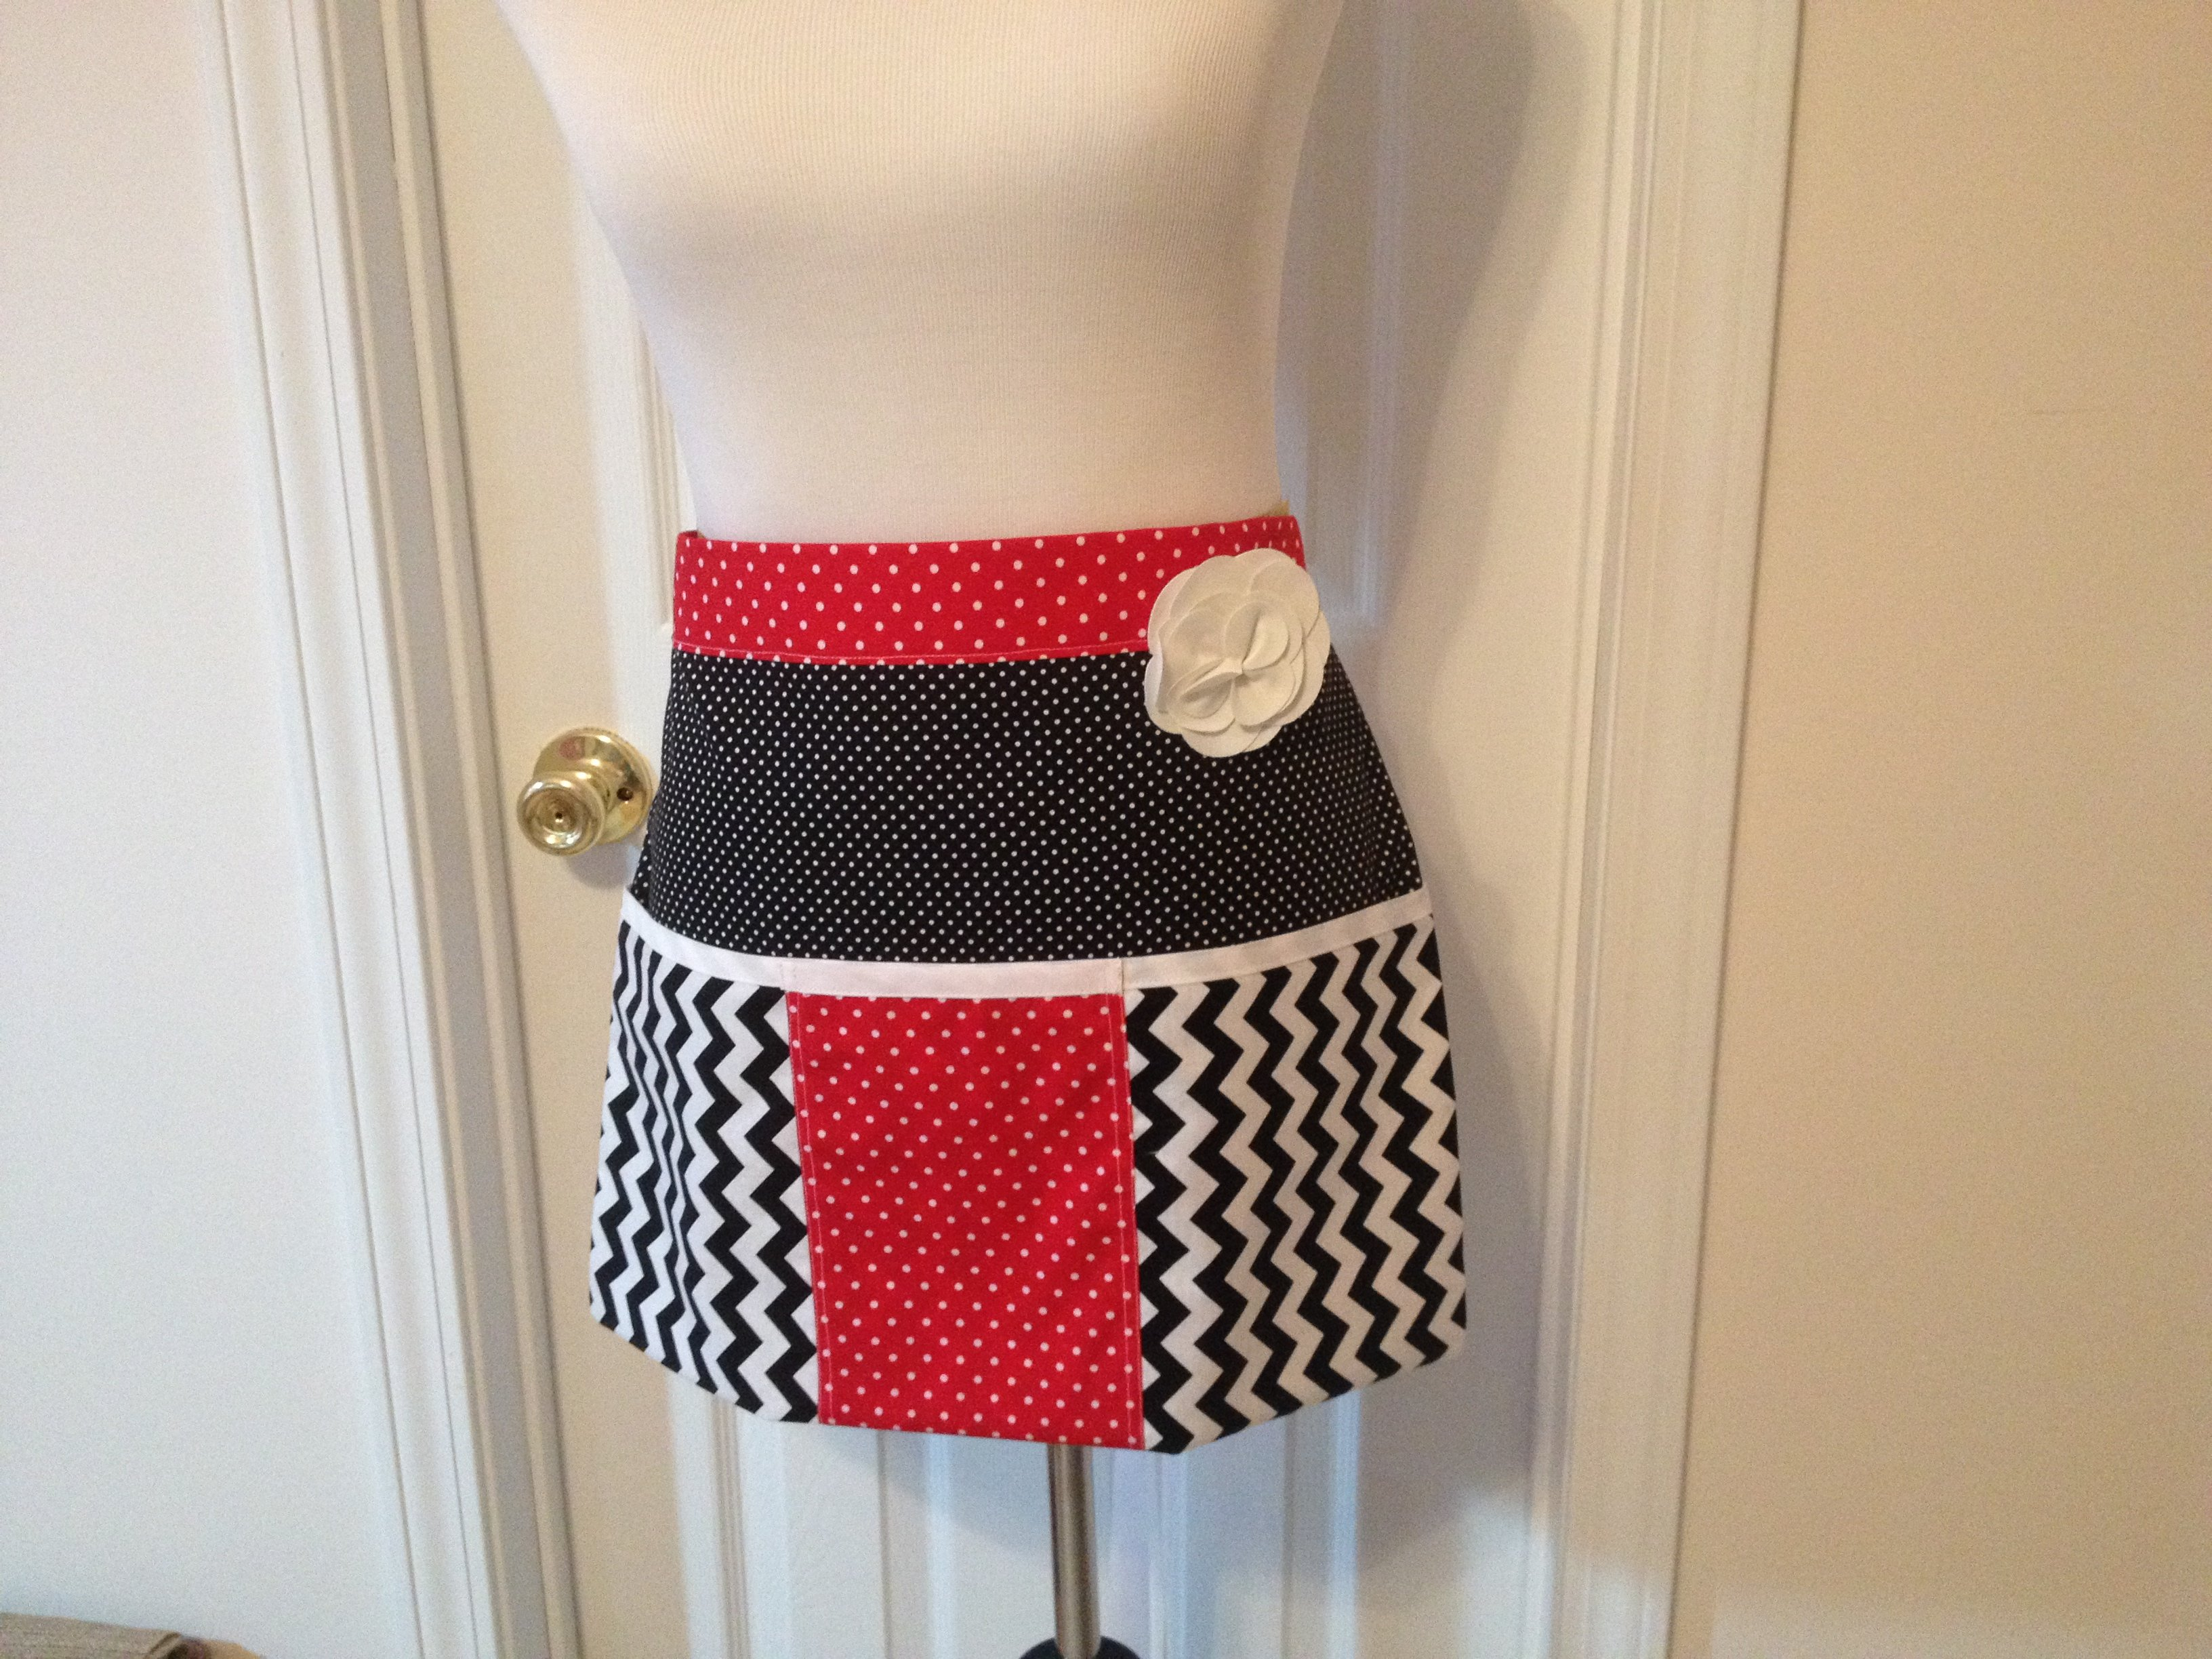 Well made apron!